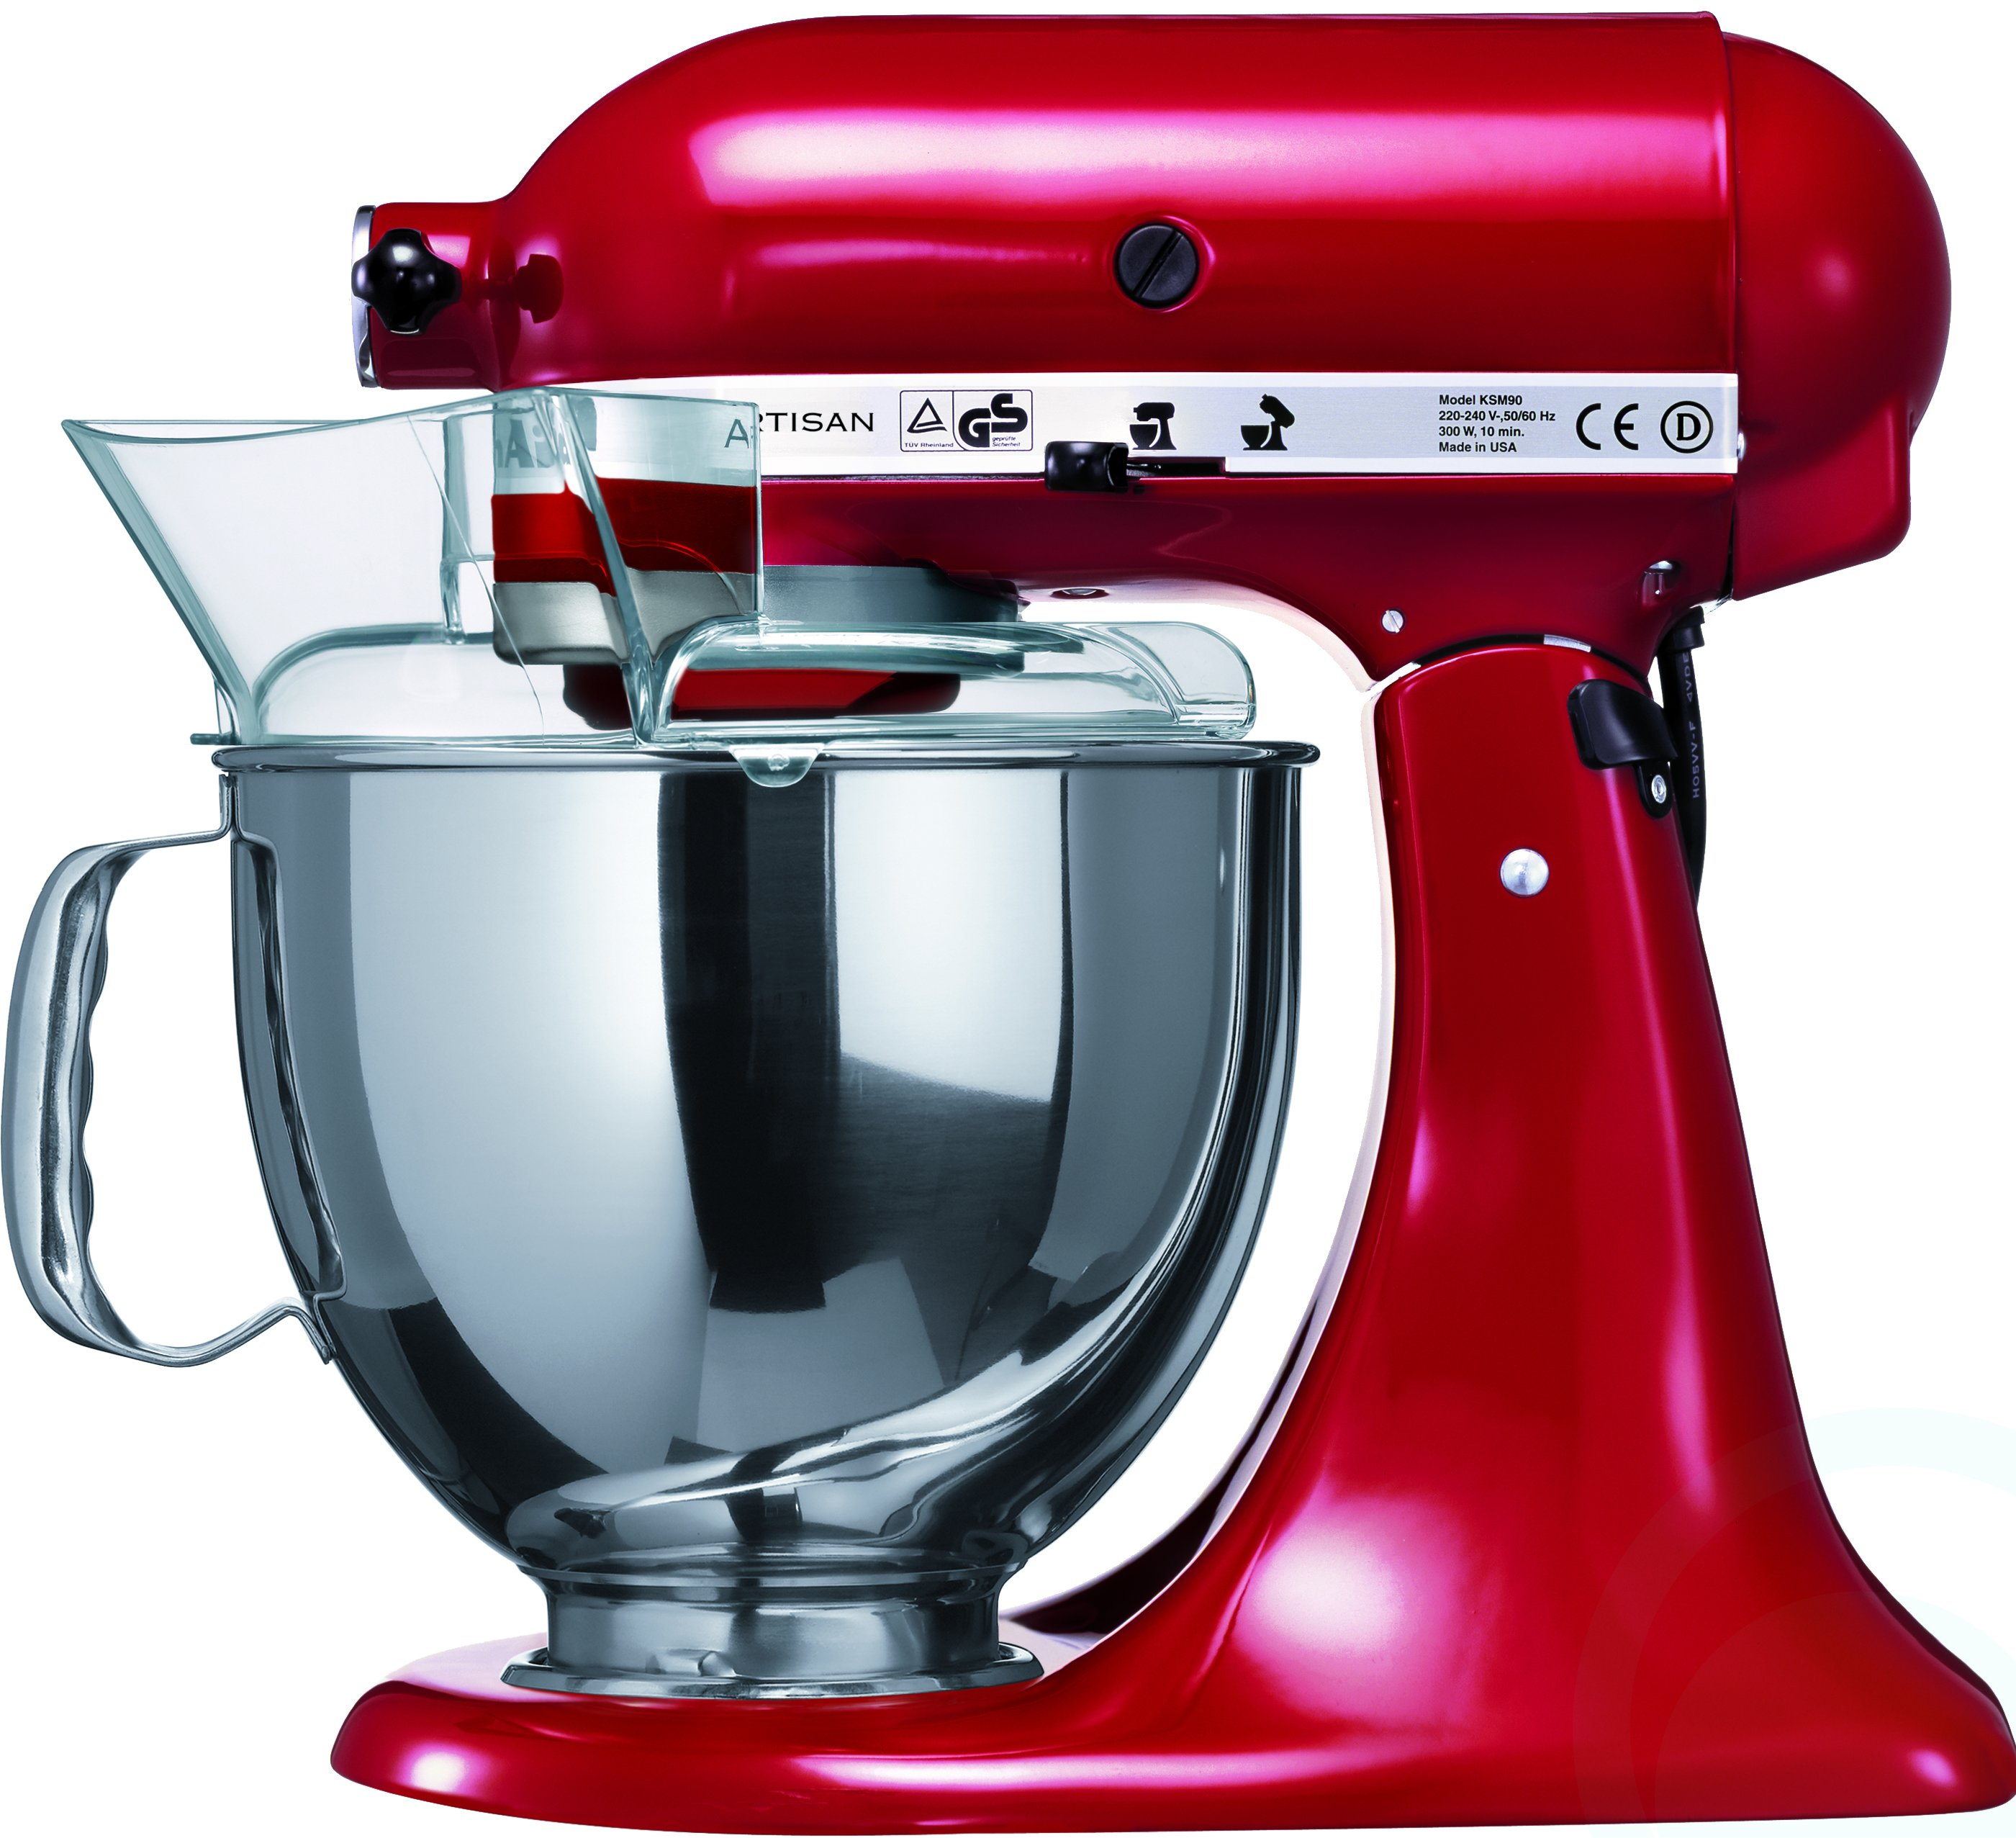 Kitchenaid ksm150 artisan